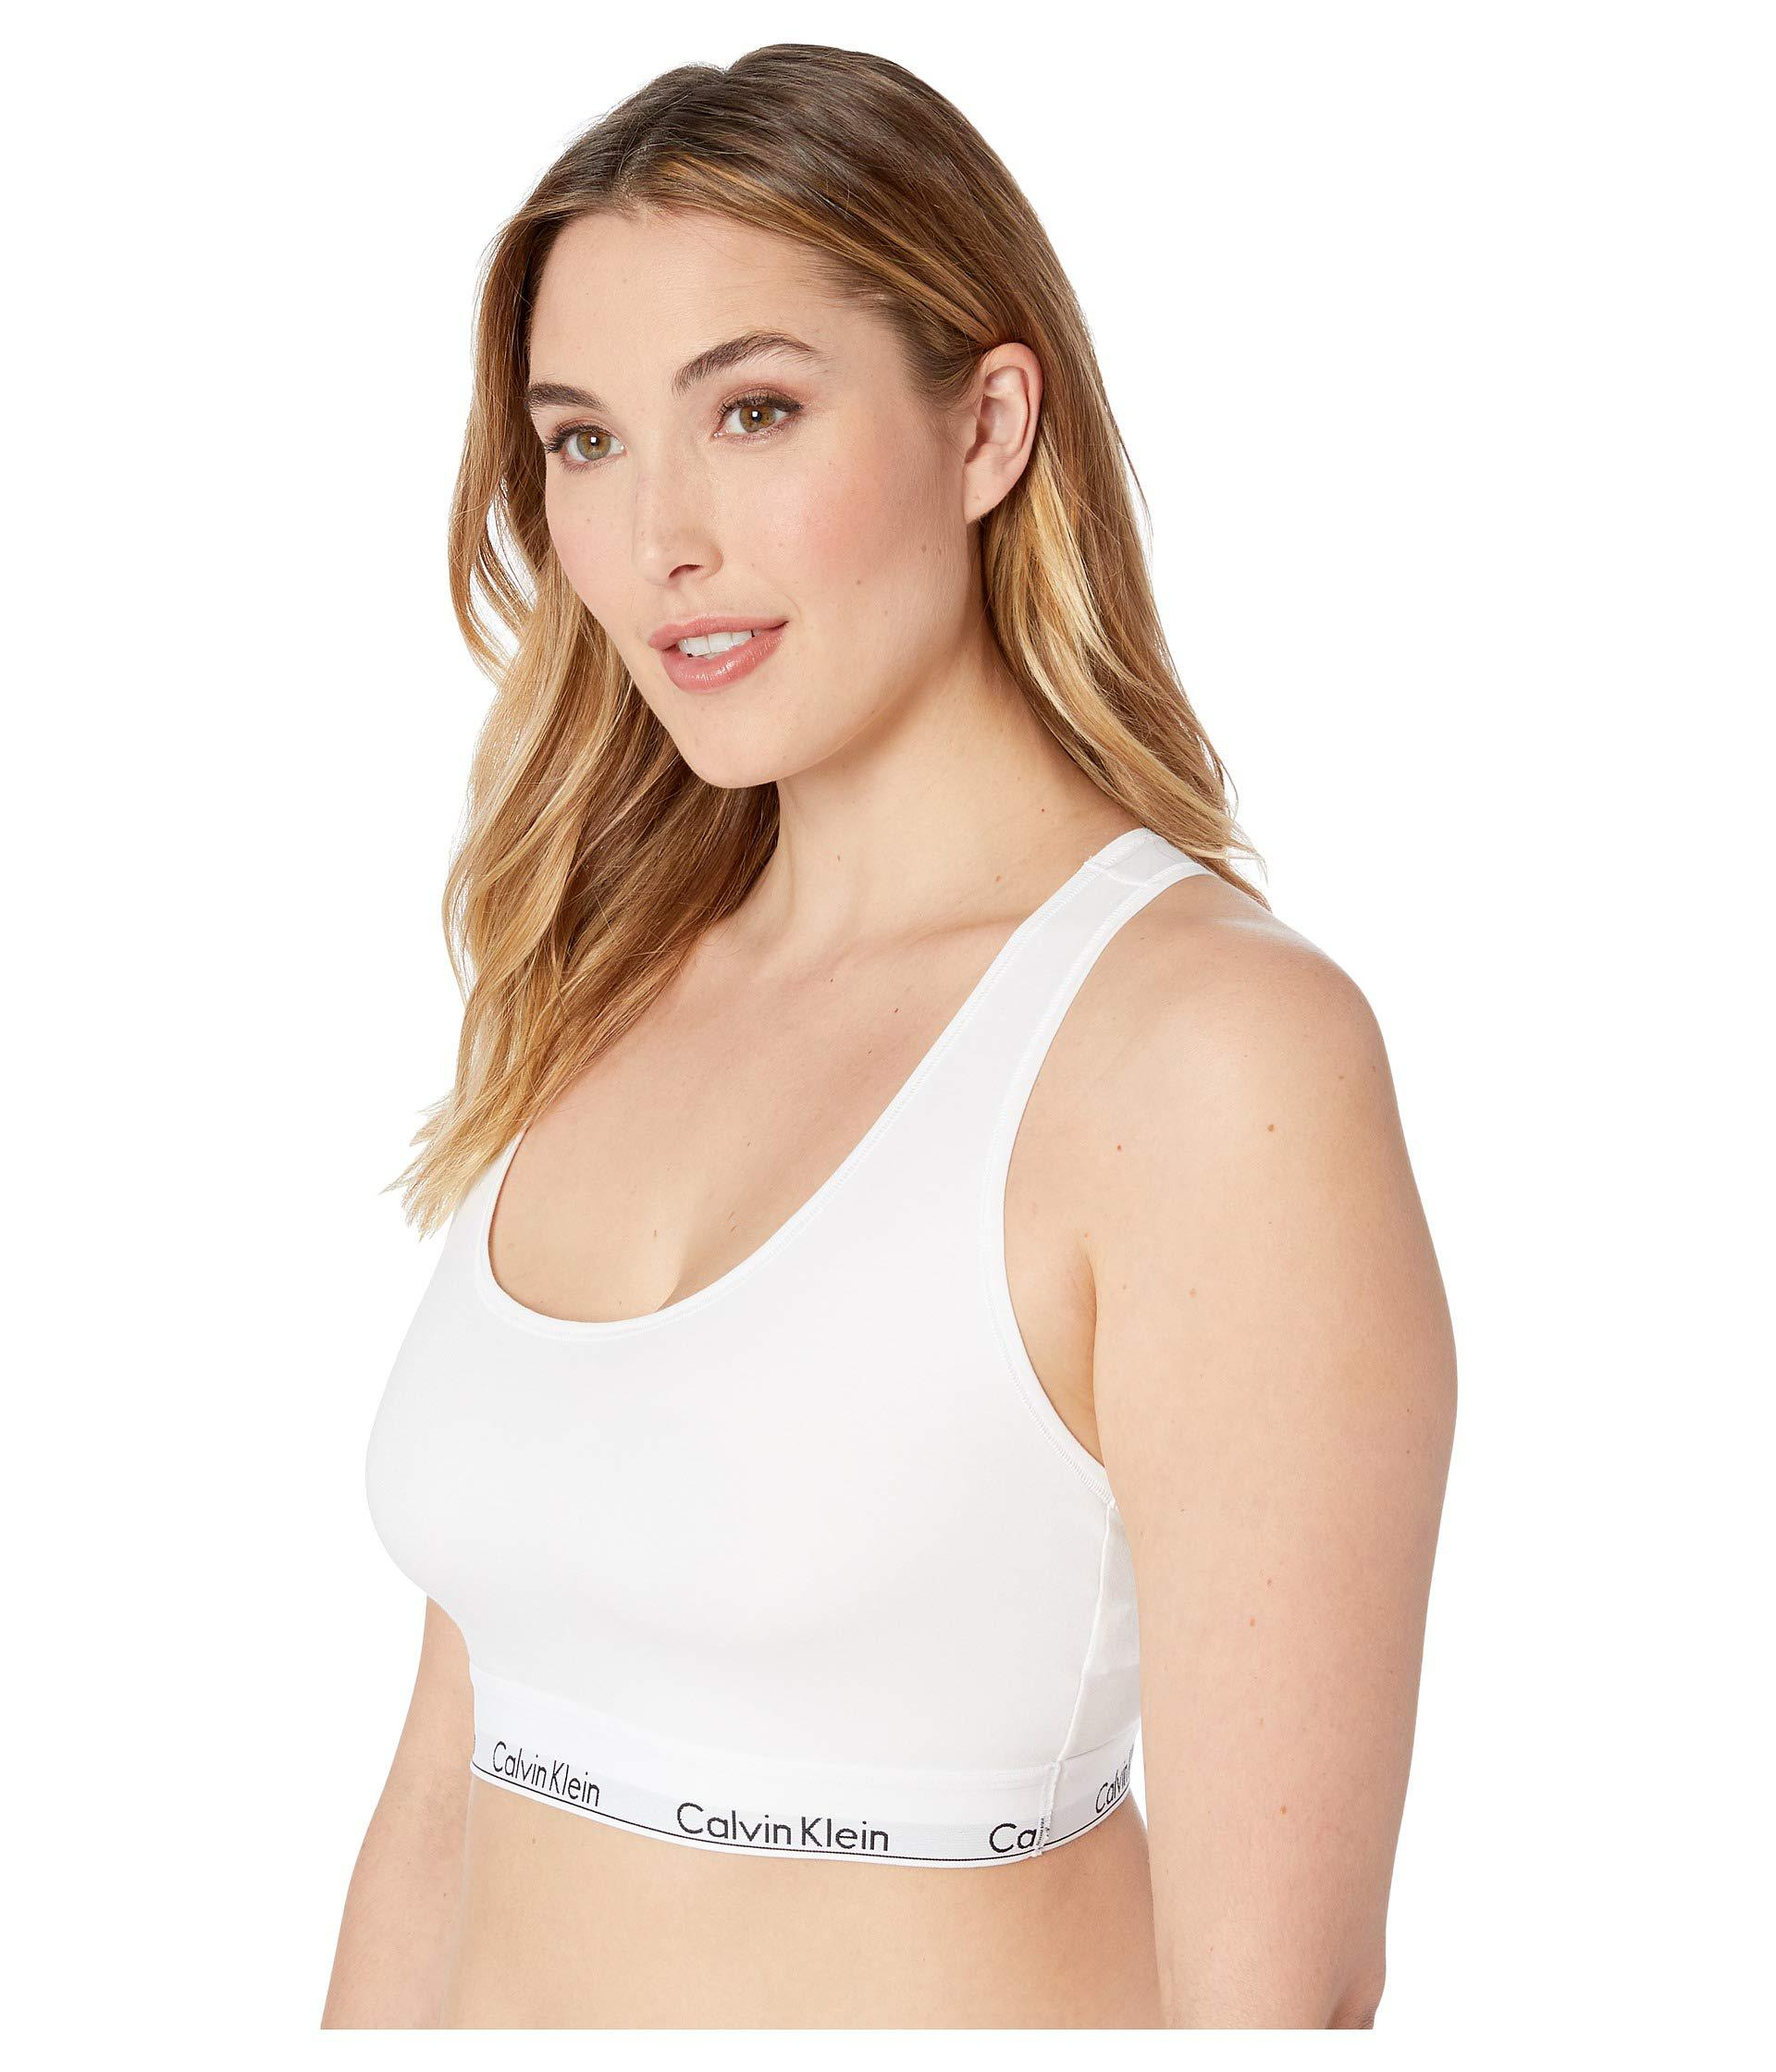 ee65f5e1d05 Calvin Klein - White Plus Size Modern Cotton Unlined Bralette (black)  Women s Bra -. View fullscreen